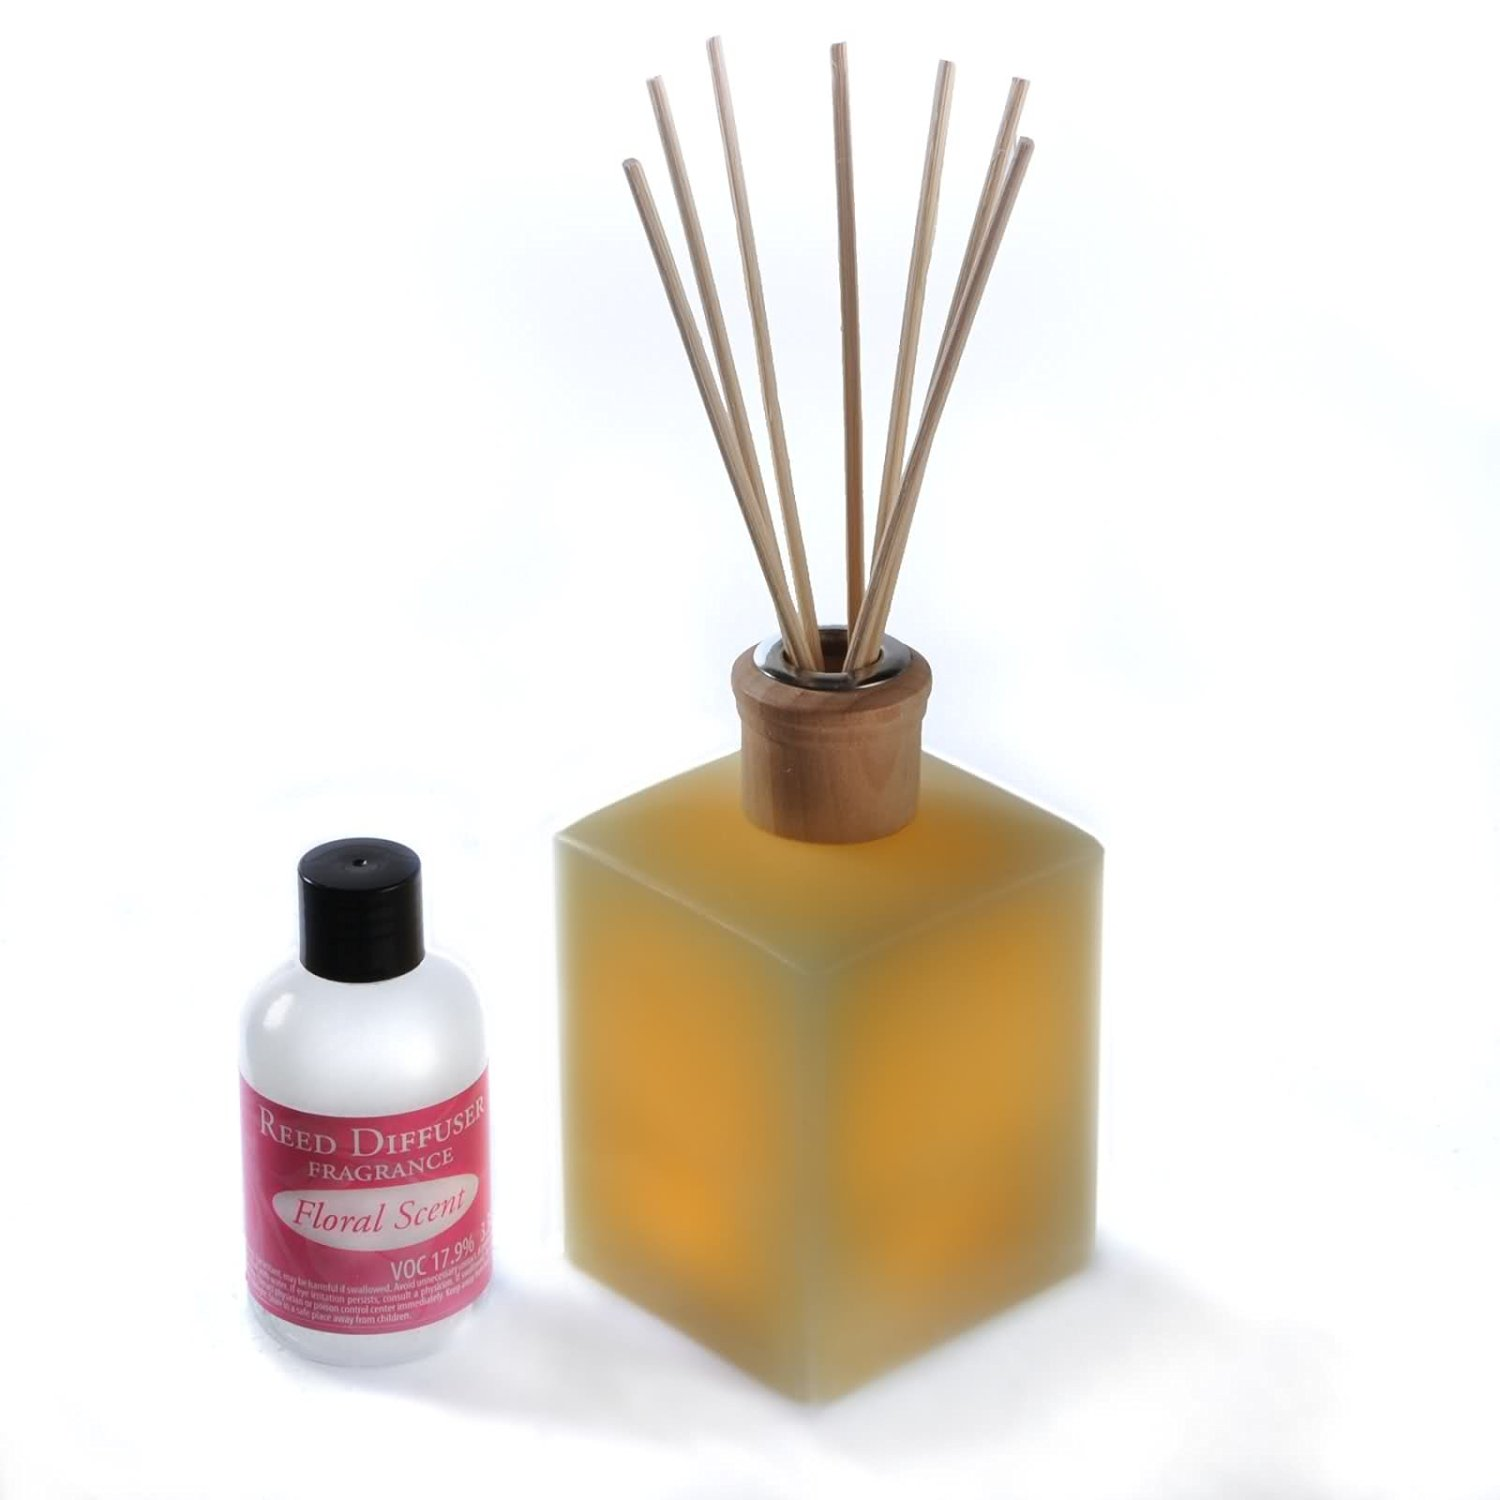 Get Quotations Candletek Décor Fluted Flameless Candle Reed Diffuser With Fresh Fl Scent